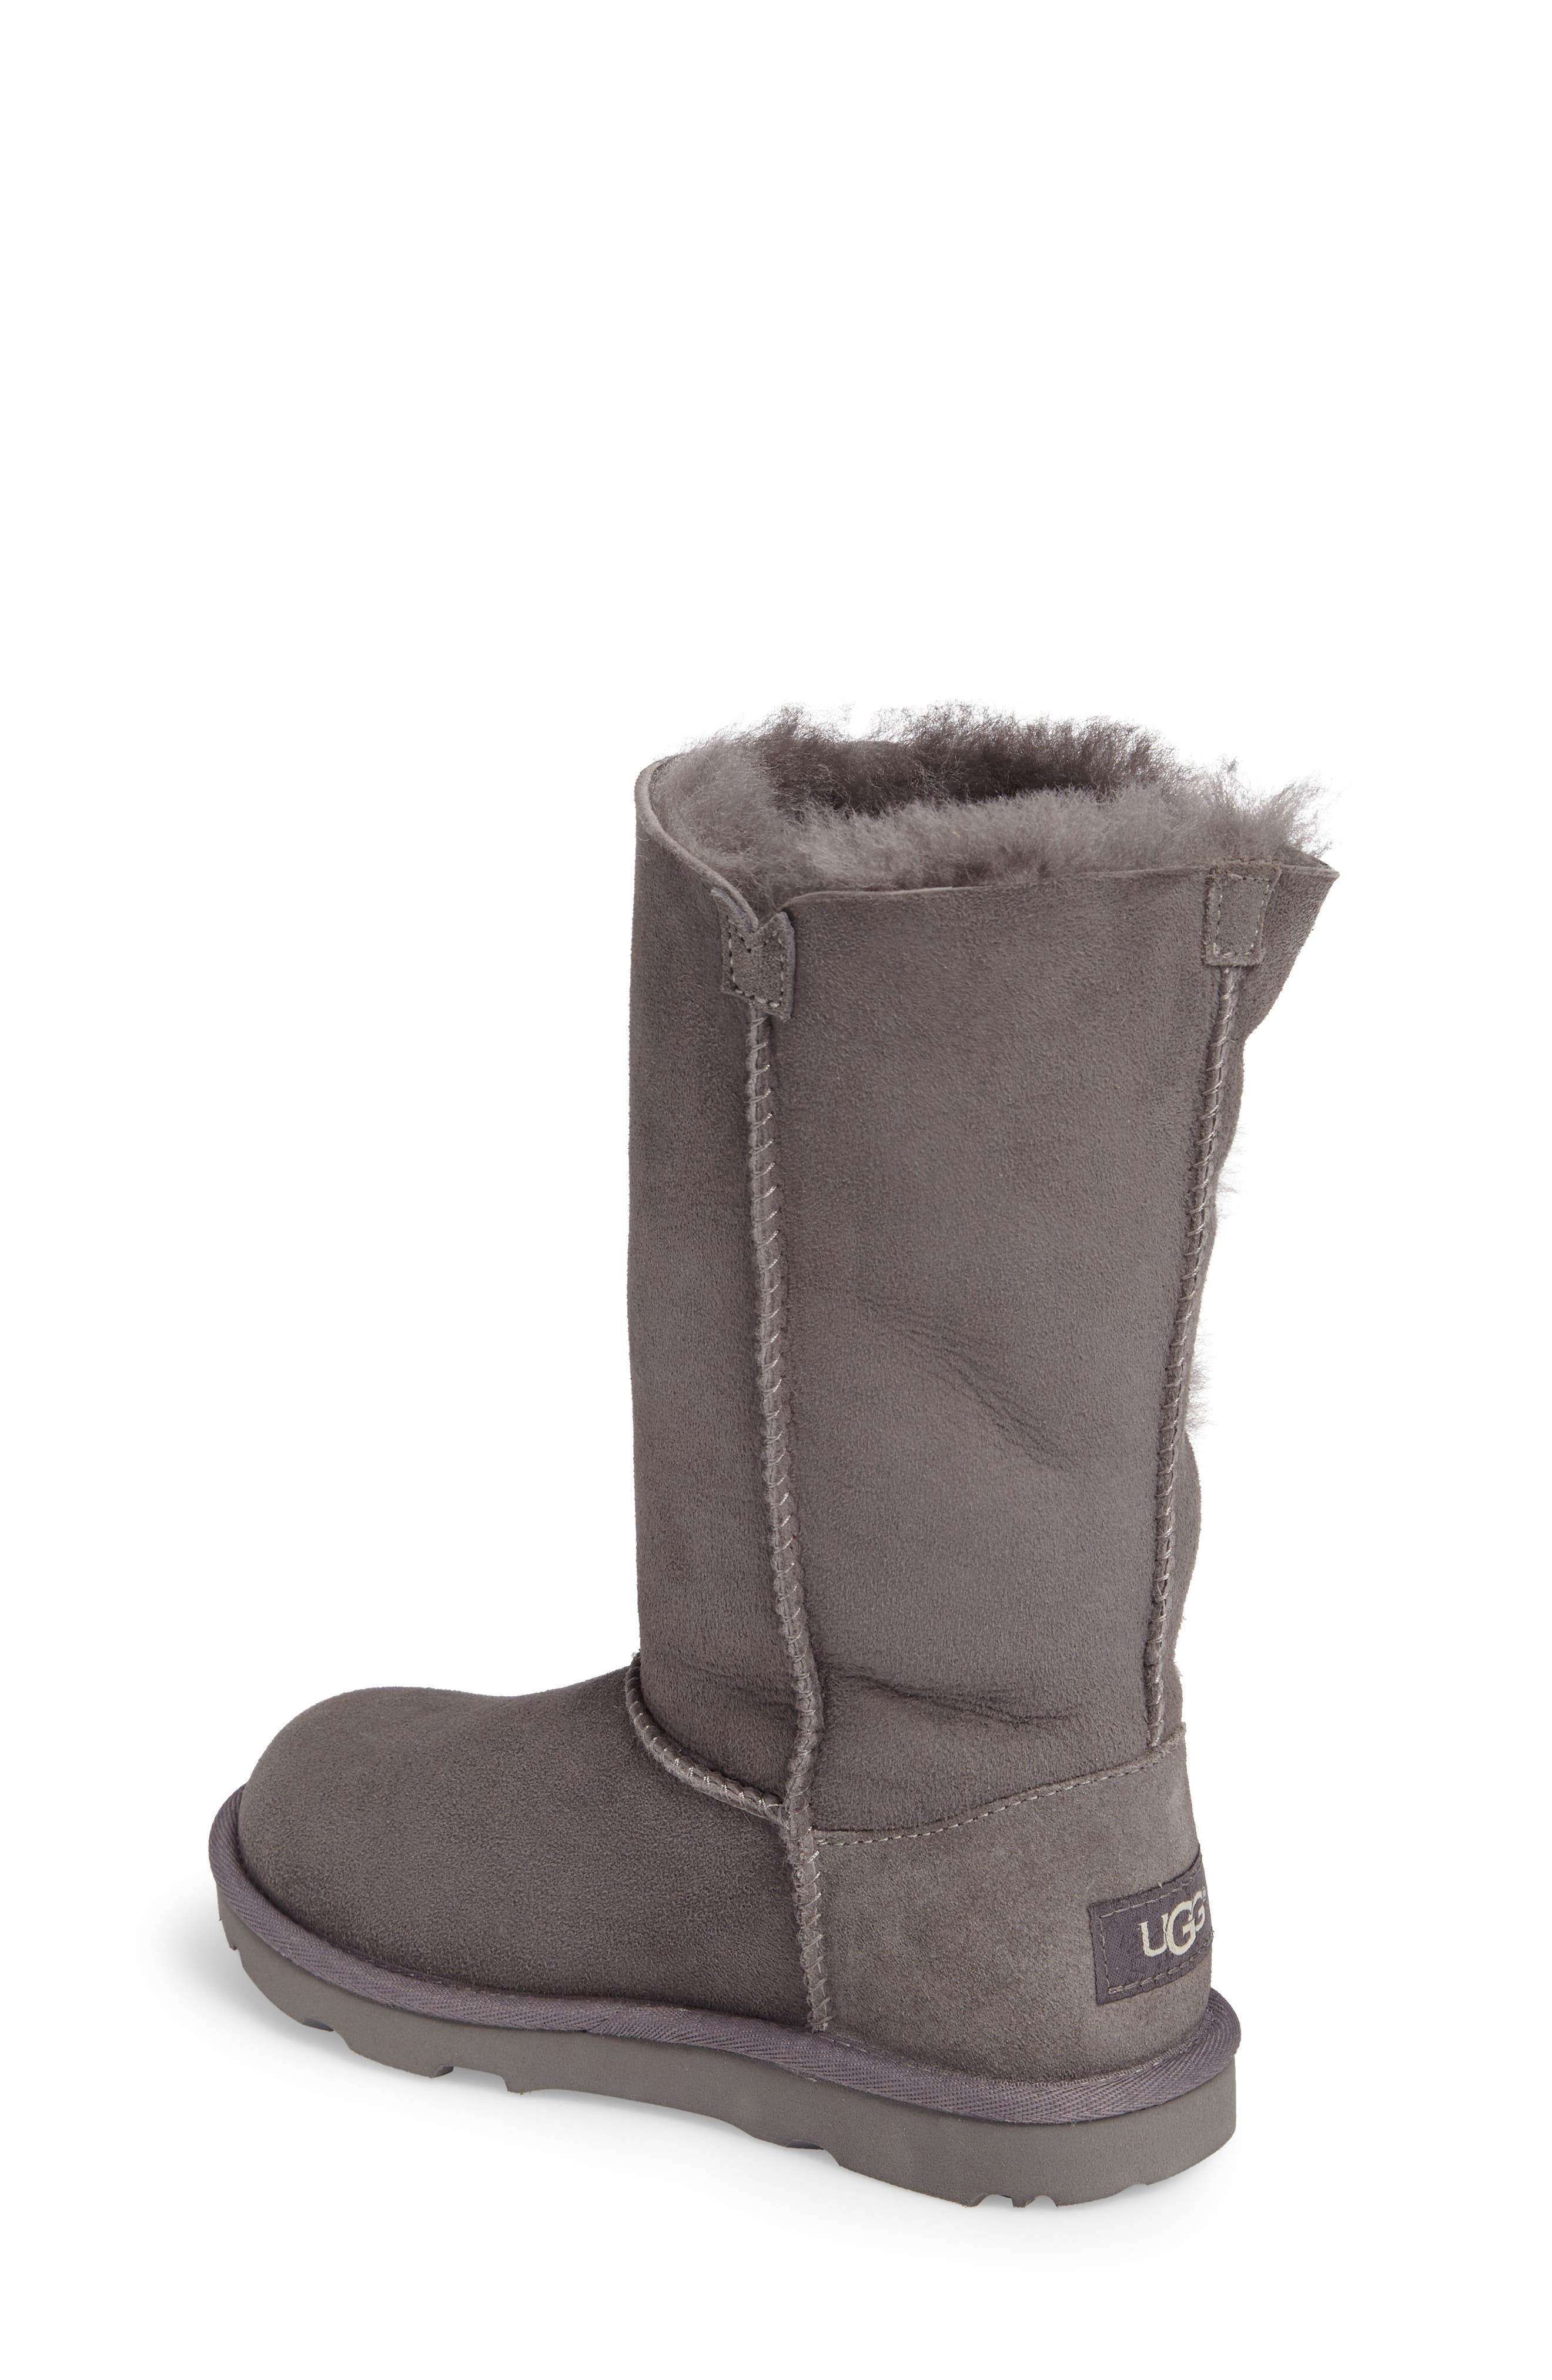 Alternate Image 2  - UGG® Bailey Button Triplet II Genuine Shearling Boot (Little Kid & Big Kid)